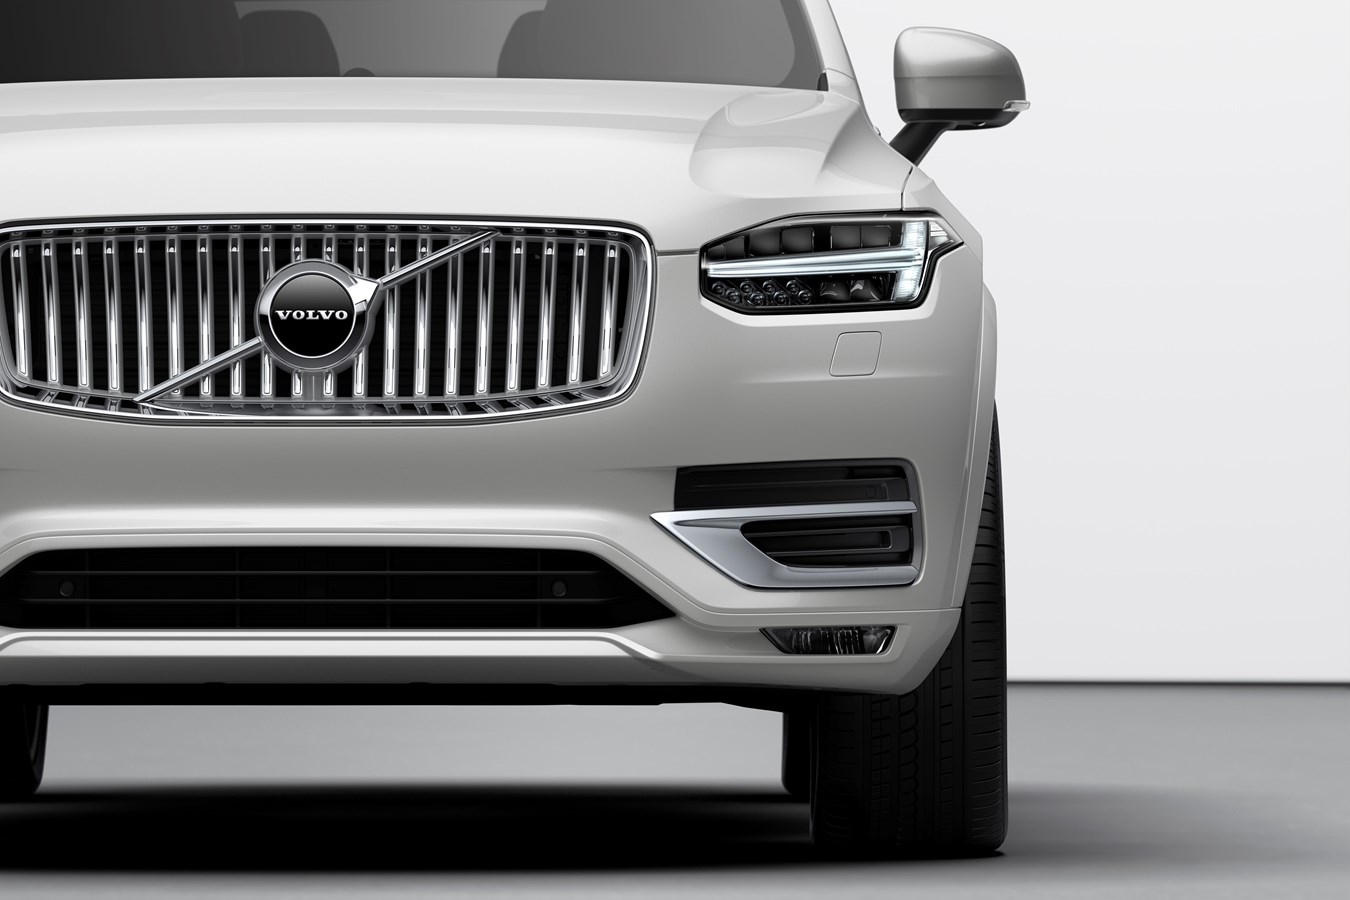 Volvo Xc90 Commercial >> The refreshed Volvo XC90 Inscription T8 Twin Engine in Birch Light Metallic - Volvo Cars Global ...